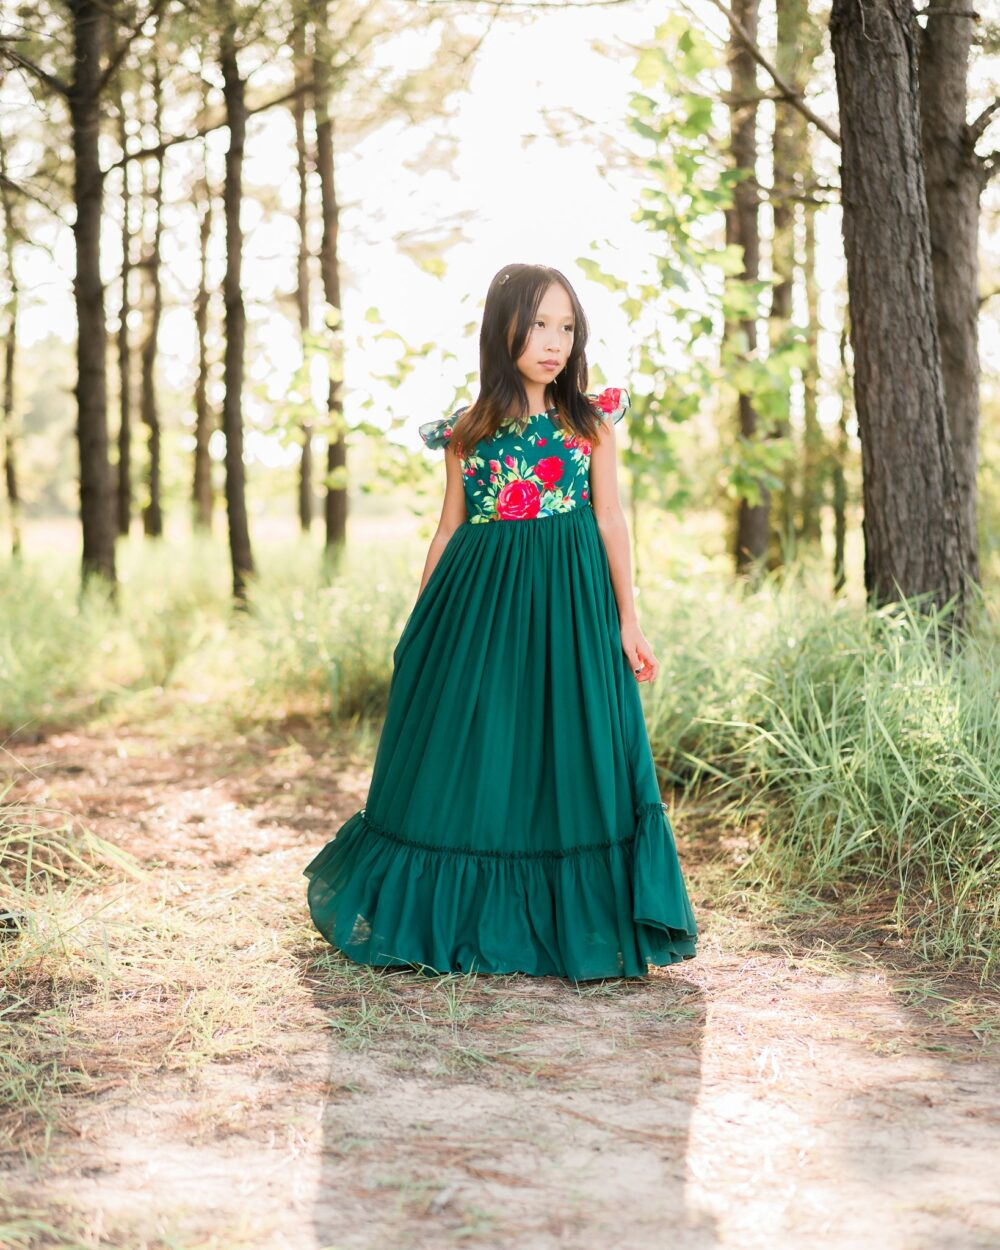 Tween Christmas Dress | Girl Holiday Party Green & Red Floral Maxi Boho Photography Toddler Emma